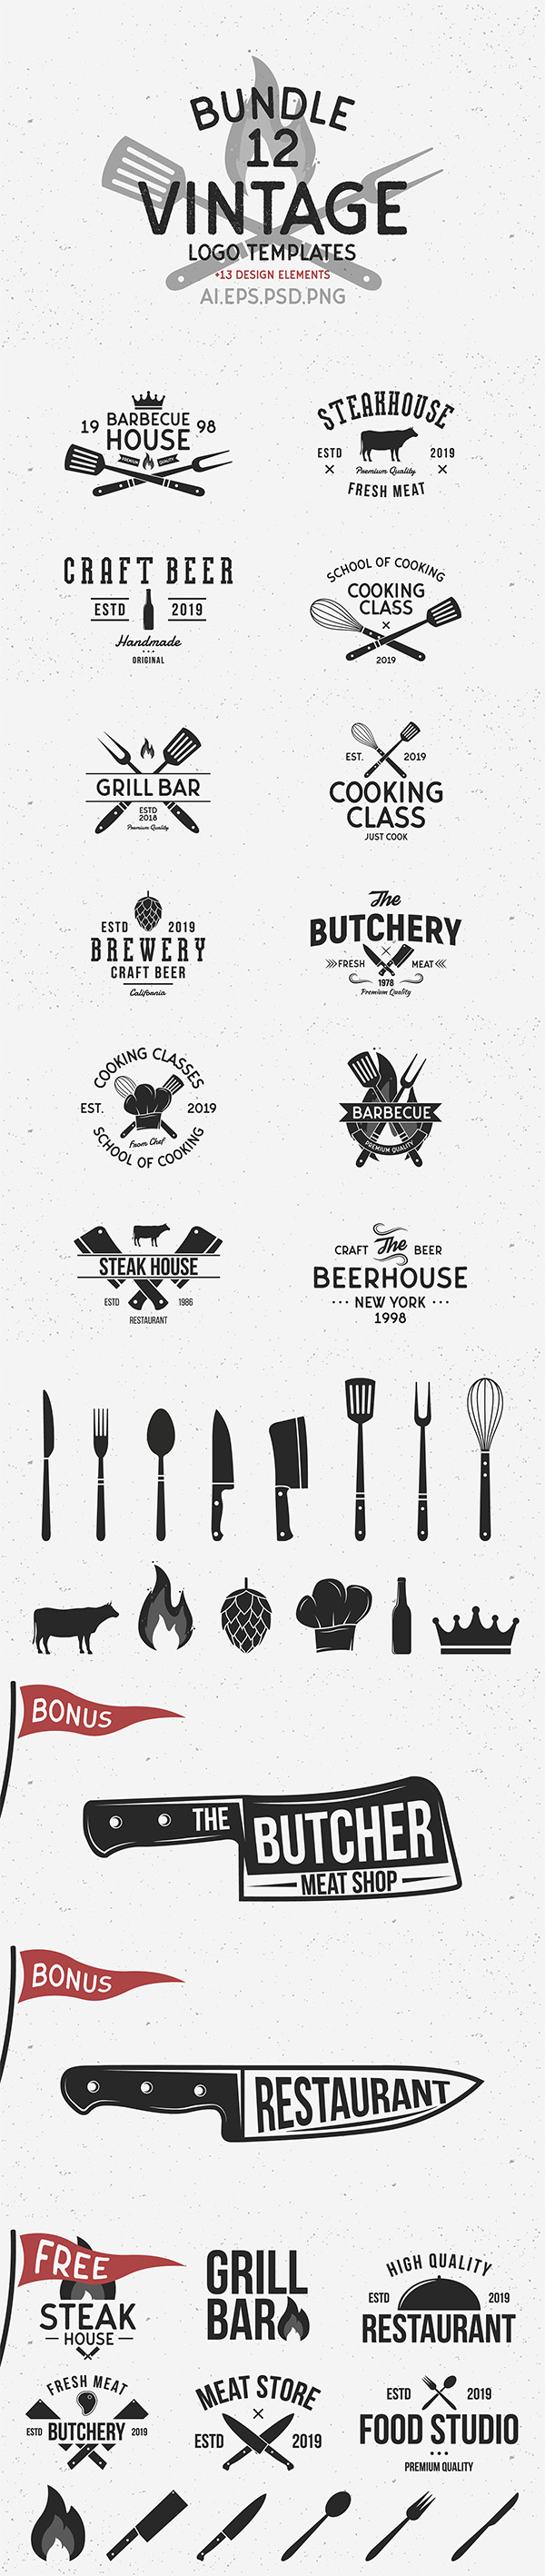 12 Vintage Logo Templates and 6 Free logos